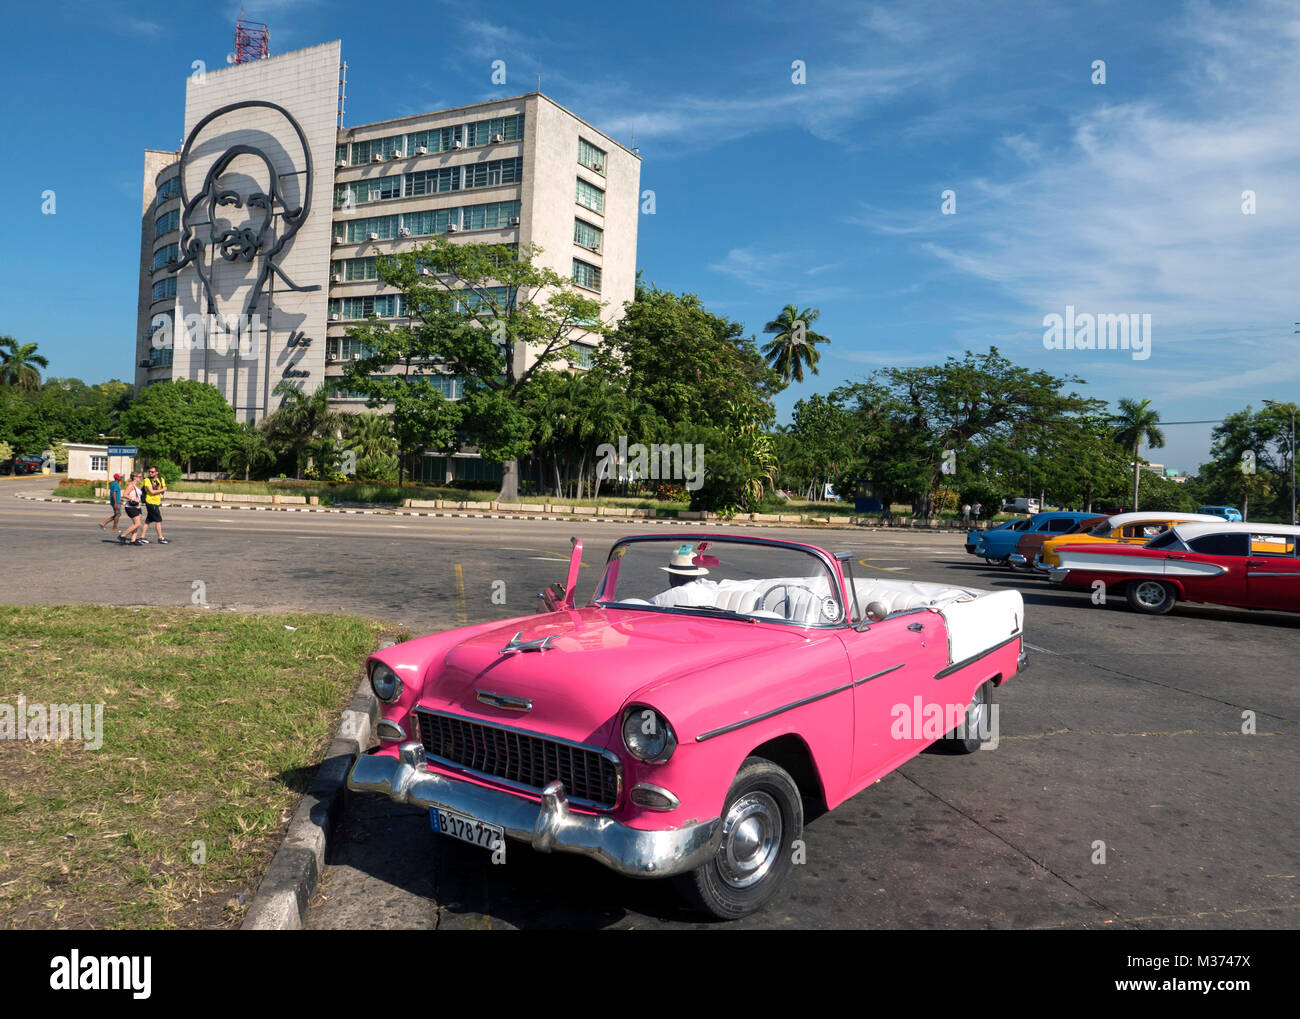 Pink 1955 Chevrolet Bel Air Convertible In Revolution Square, Havana With  Mural Of Fidel Castro